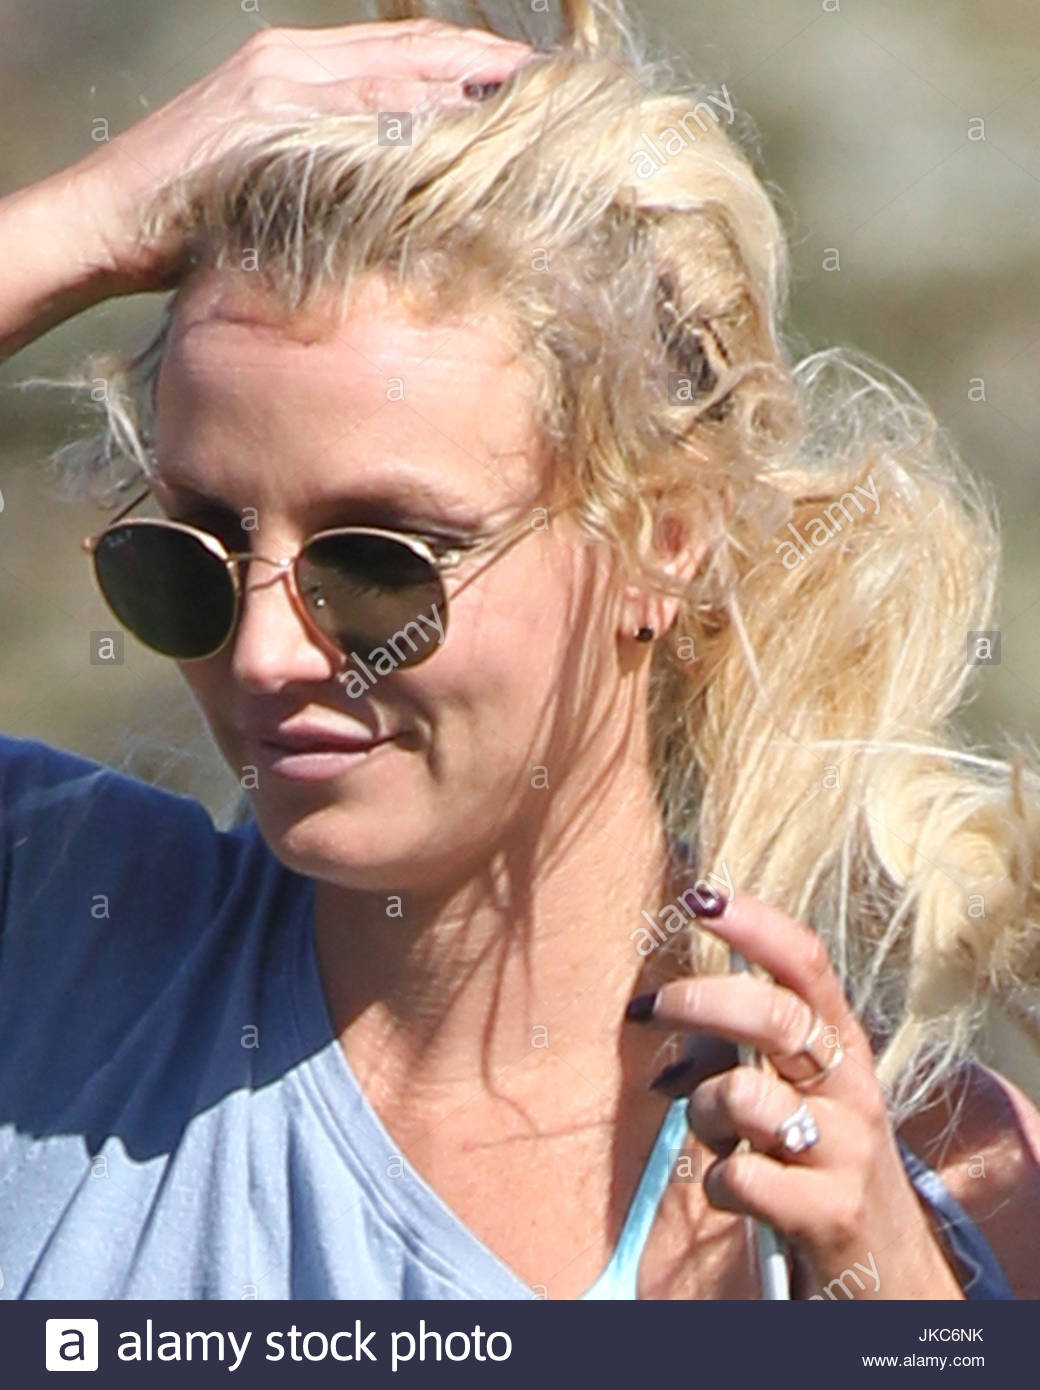 Britney Spears Britney Spears Unwittingly Shows Her Messy Hair